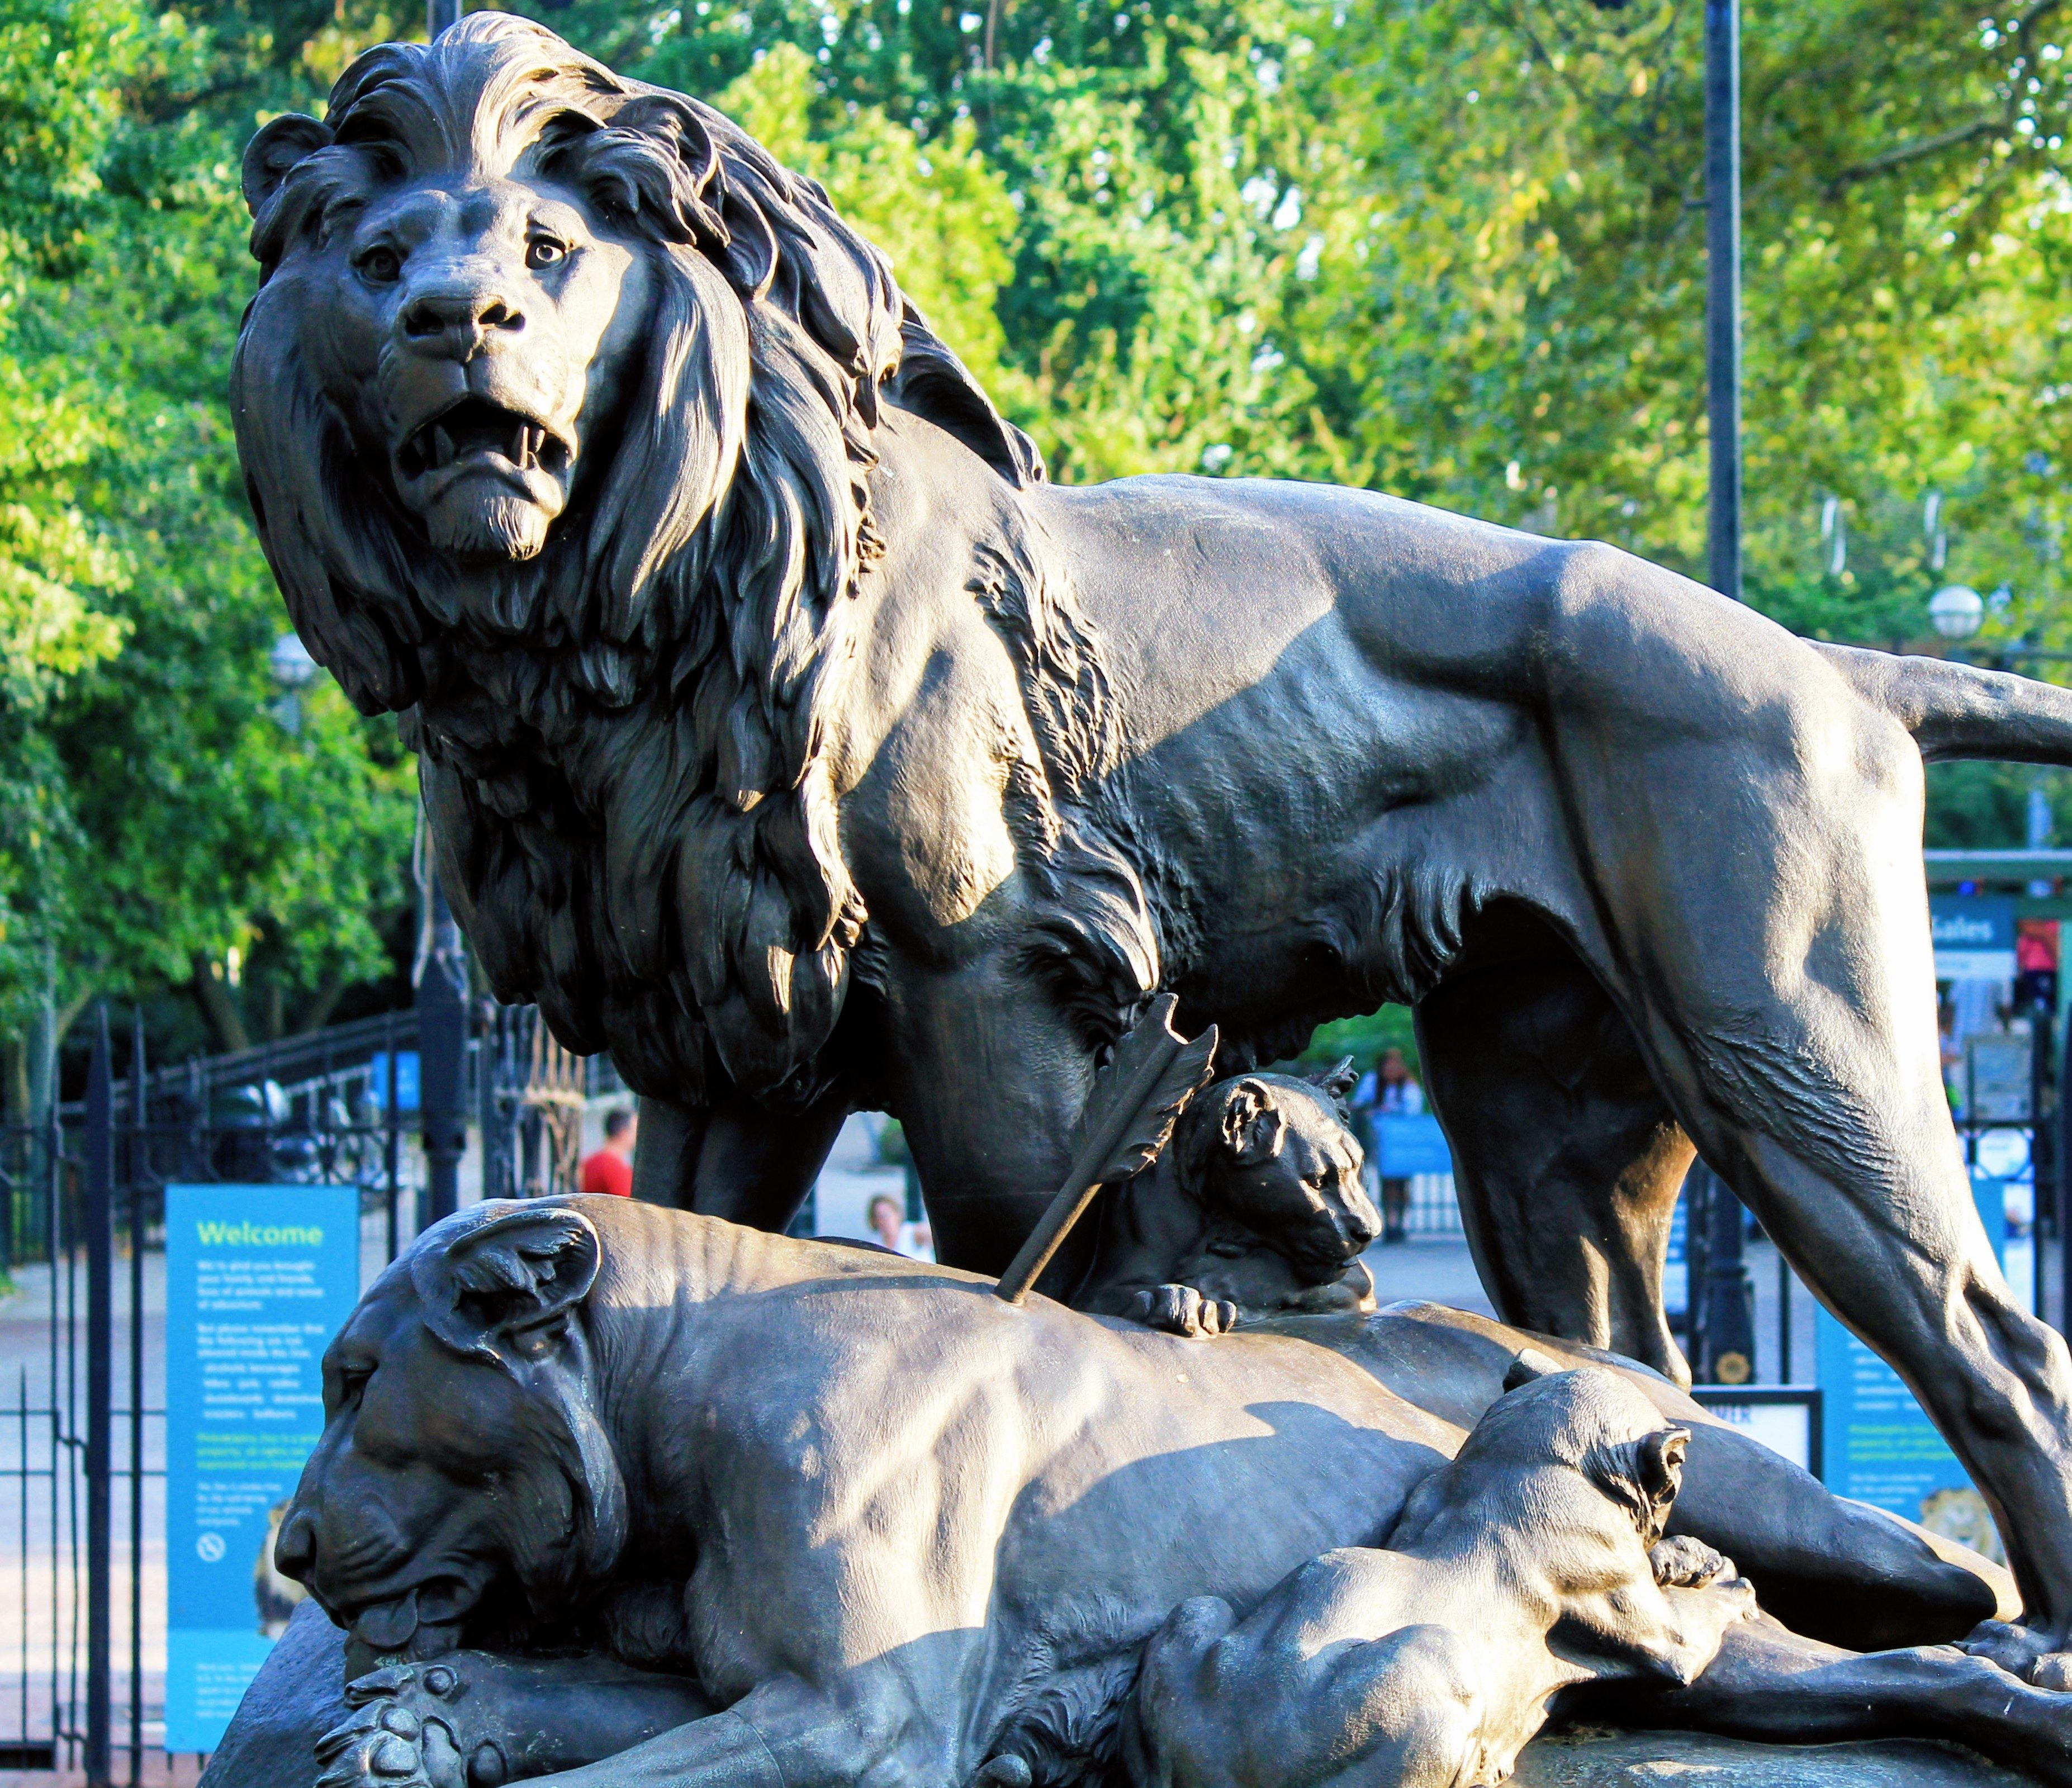 Sculpture Dying Lioness